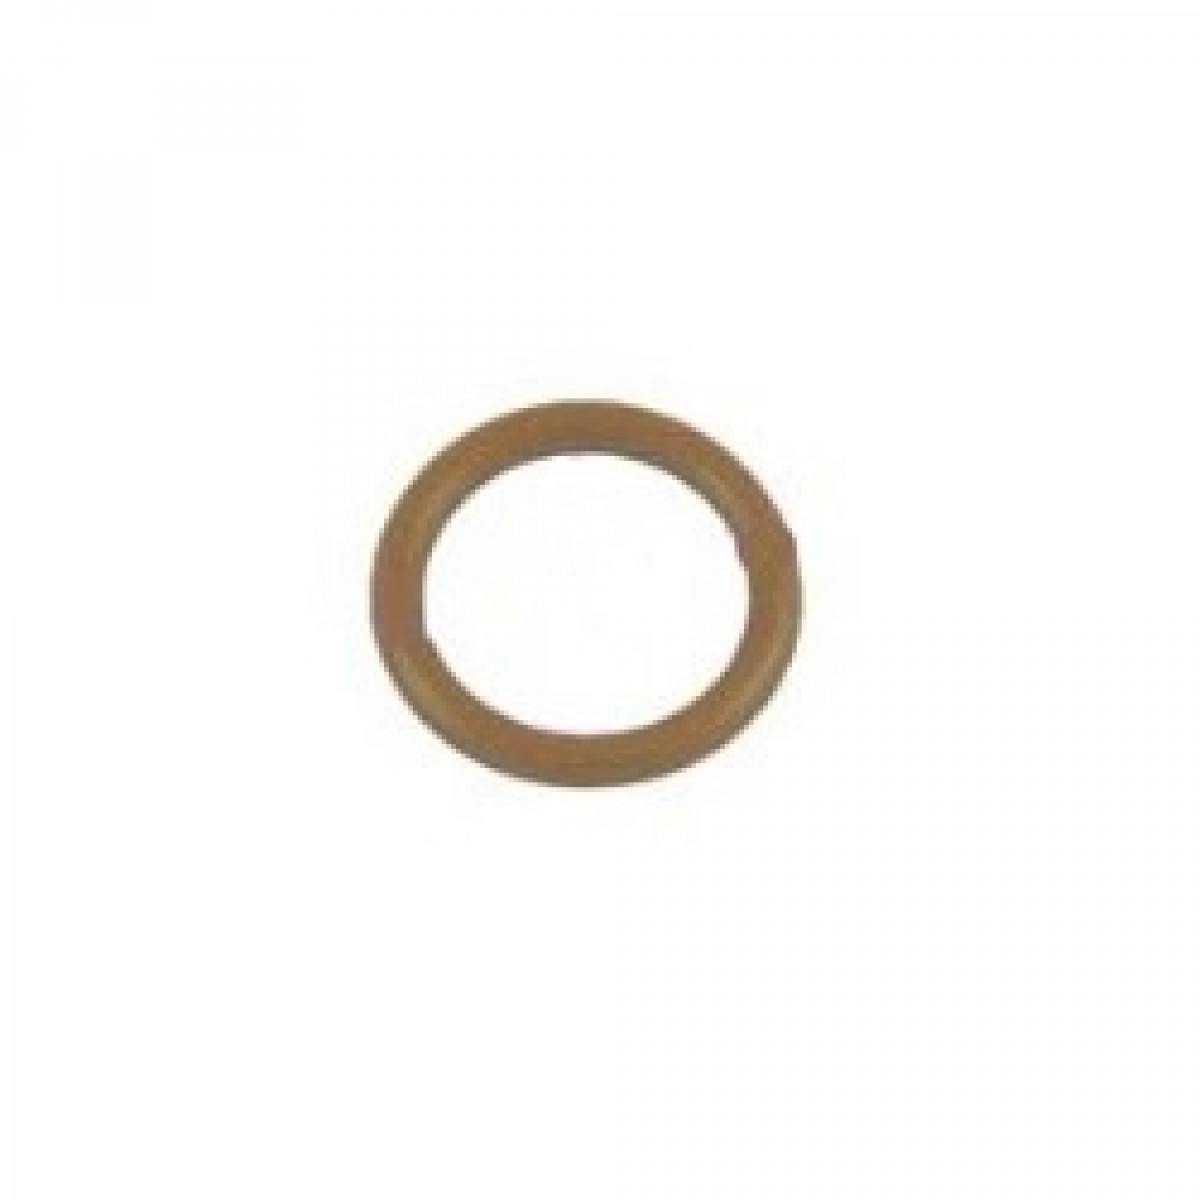 Image of 002045 Viqua Replacement O-Ring